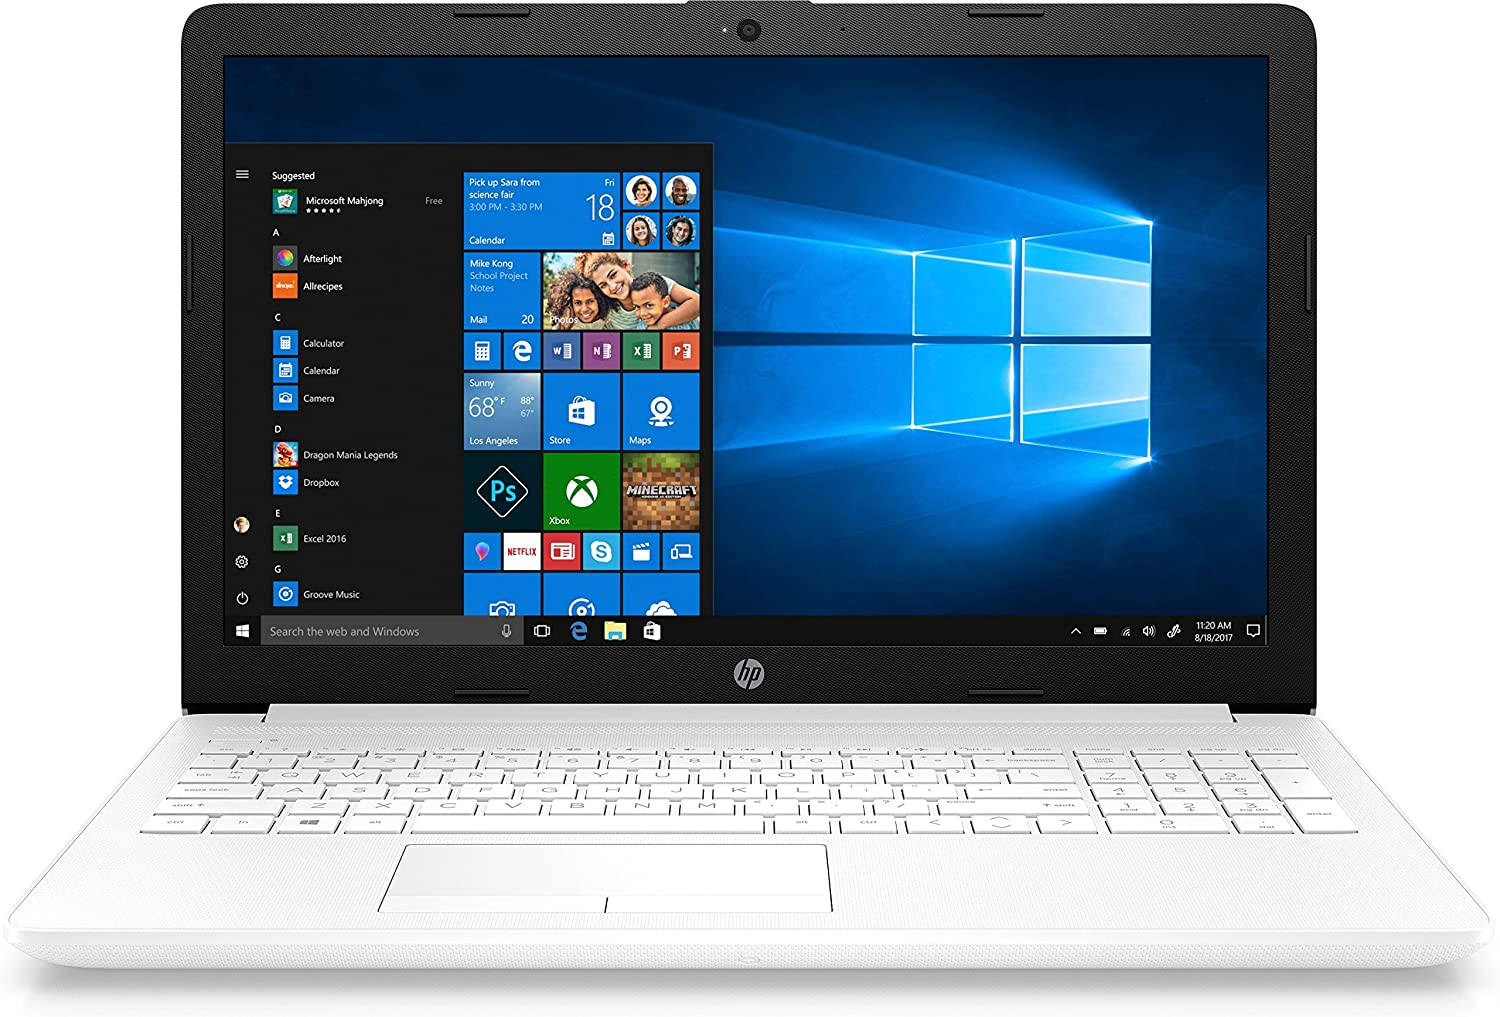 PORTÁTIL HP 15-DA0002NS - Intel N4000 1.1GHZ - 4GB - 500GB - 15.6'/39.6CM - DVD RW - HDMI - WiFi BGN - BT - W10 - Blanco